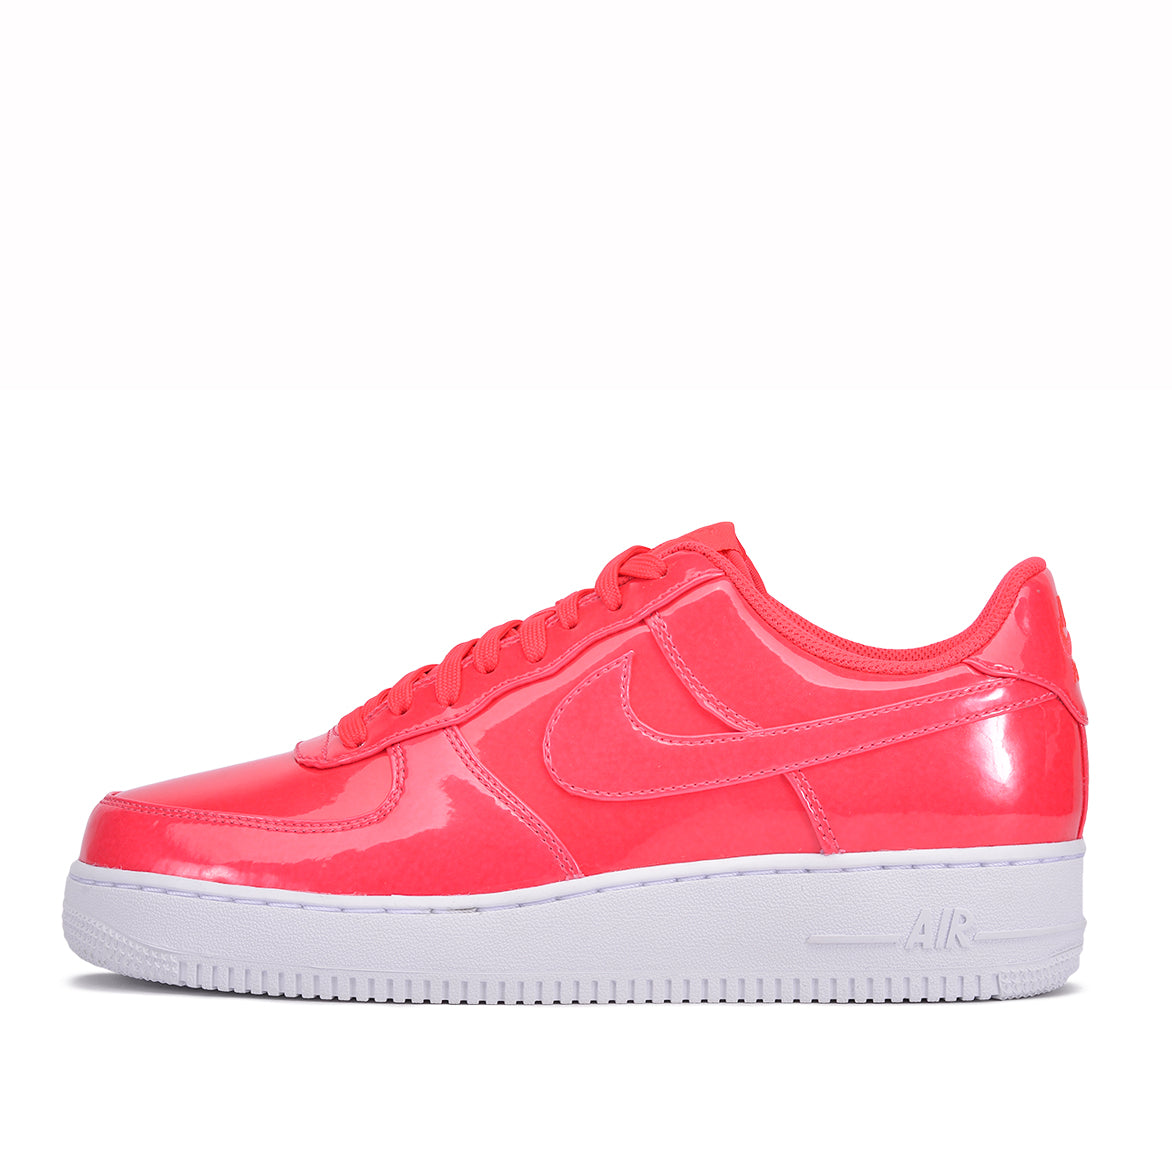 finest selection 7e7bd 0cf3c AIR FORCE 1 `07 LV8 UV - SIREN RED  City Blue